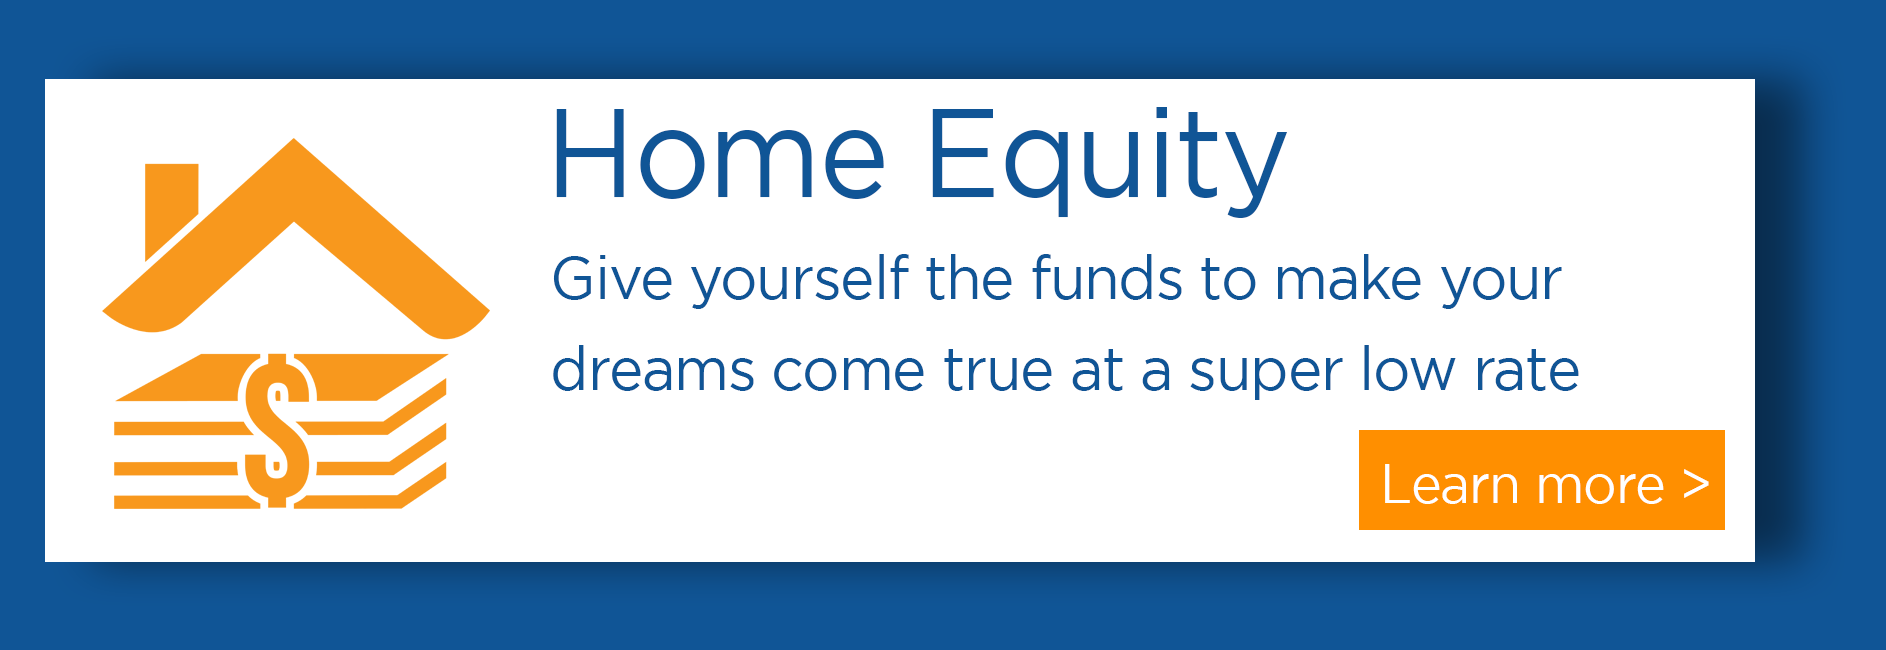 Home equity loan at Central Sunbelt